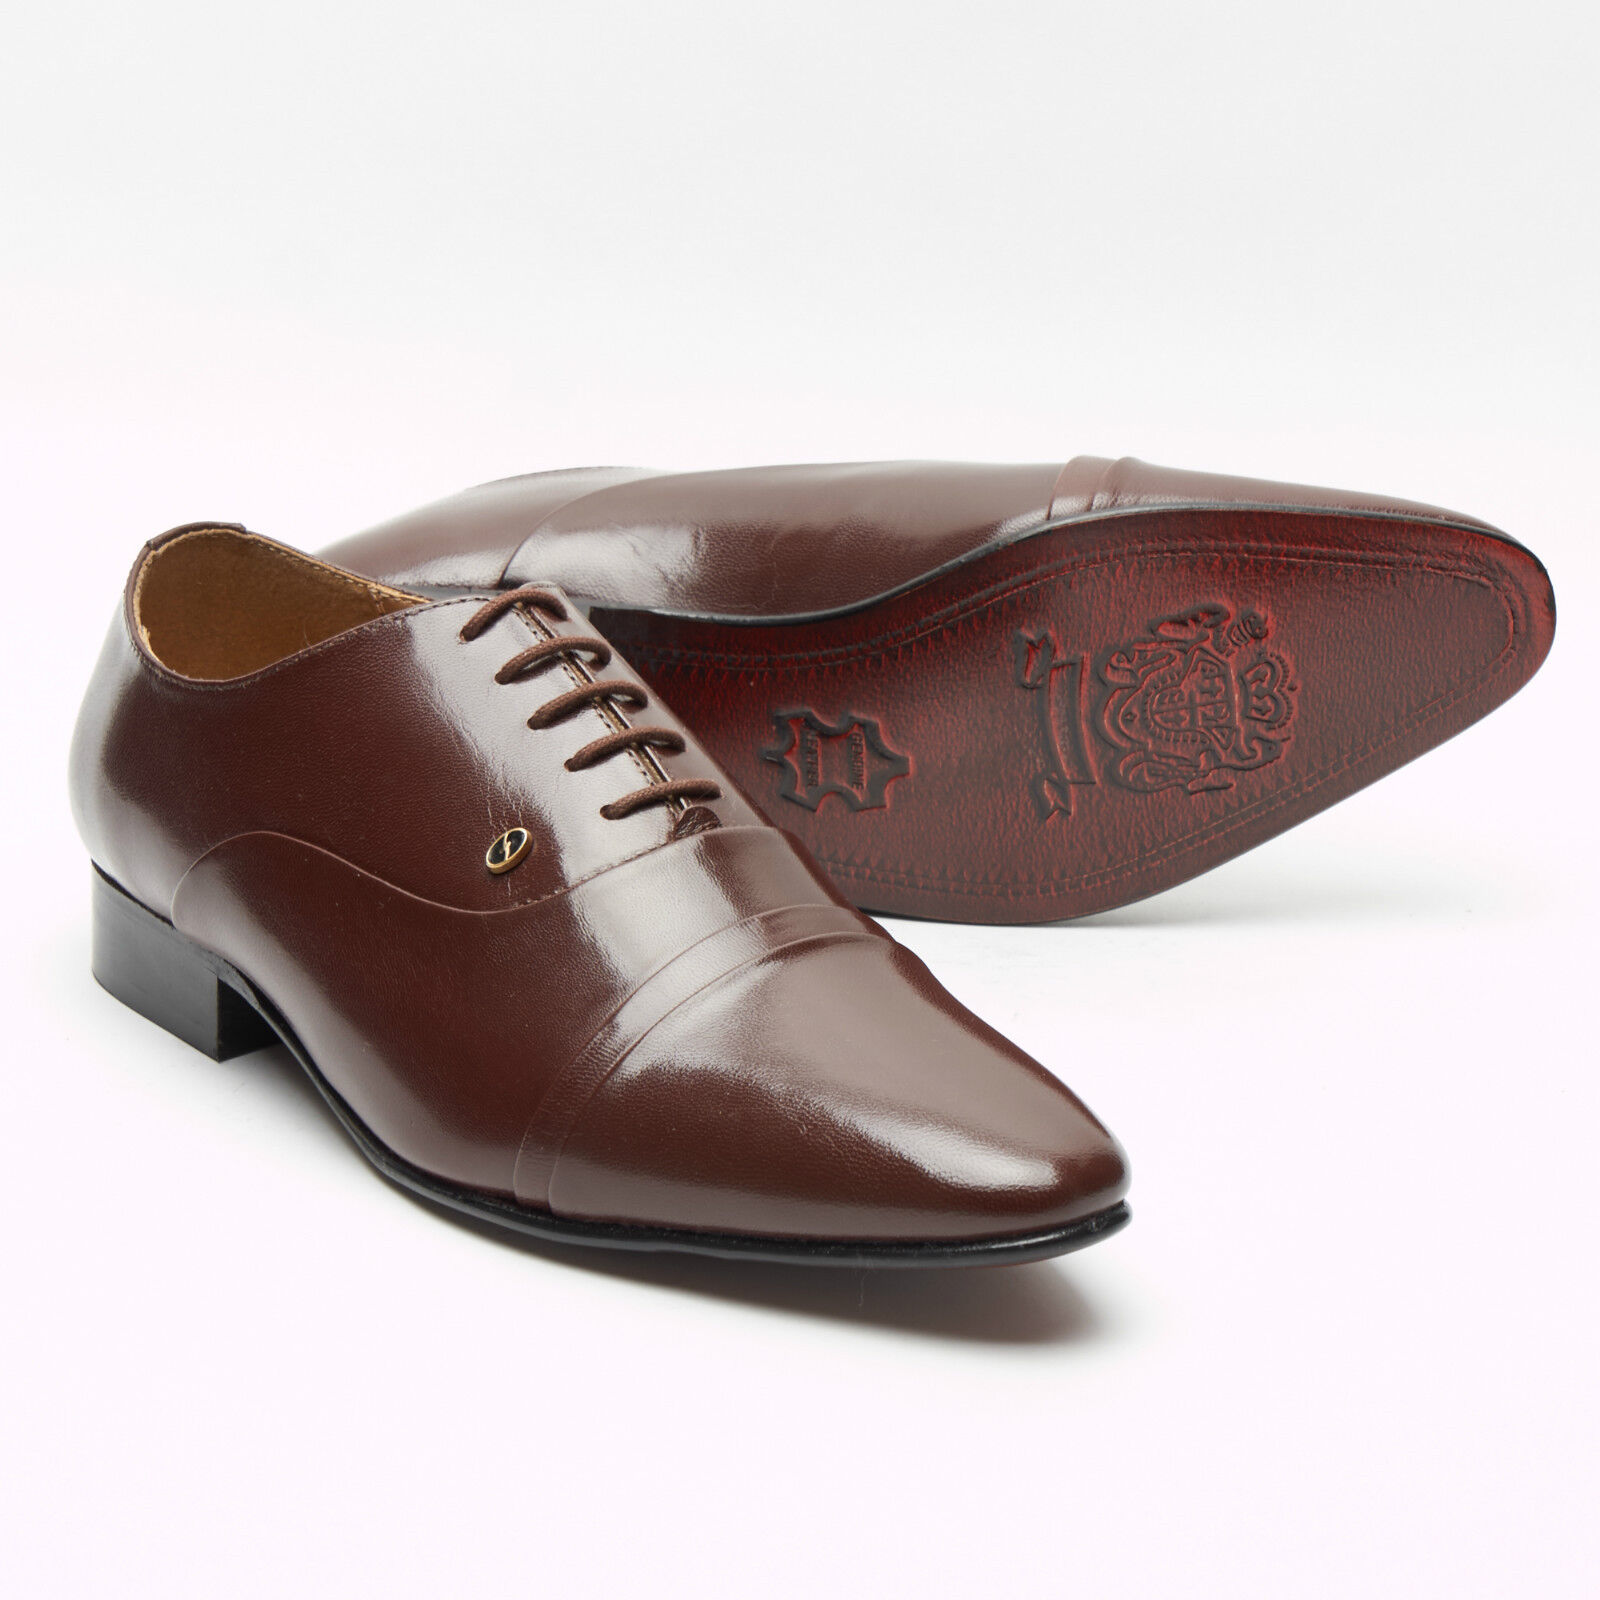 f635290f7ad65 MENS BROWN LUCINI LEATHER SMART FORMAL LACE SHOES,LOW HEEL SIZES 6-11 33451  UP nofwlx2360-Formal Shoes